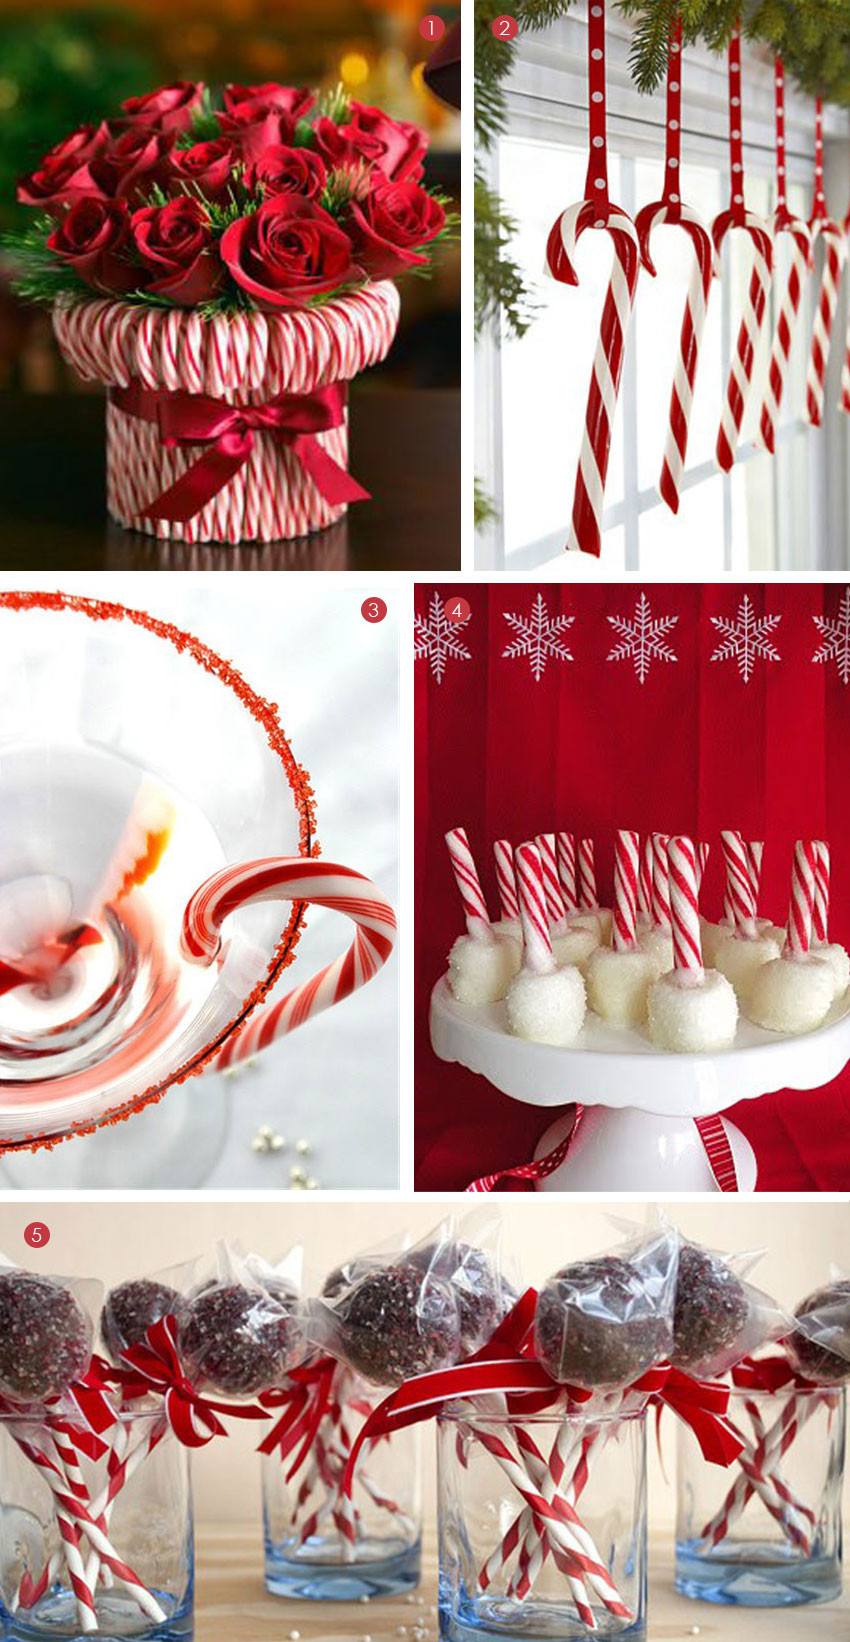 Candy Cane Ideas For Christmas  Desserts Candy Cane Treats